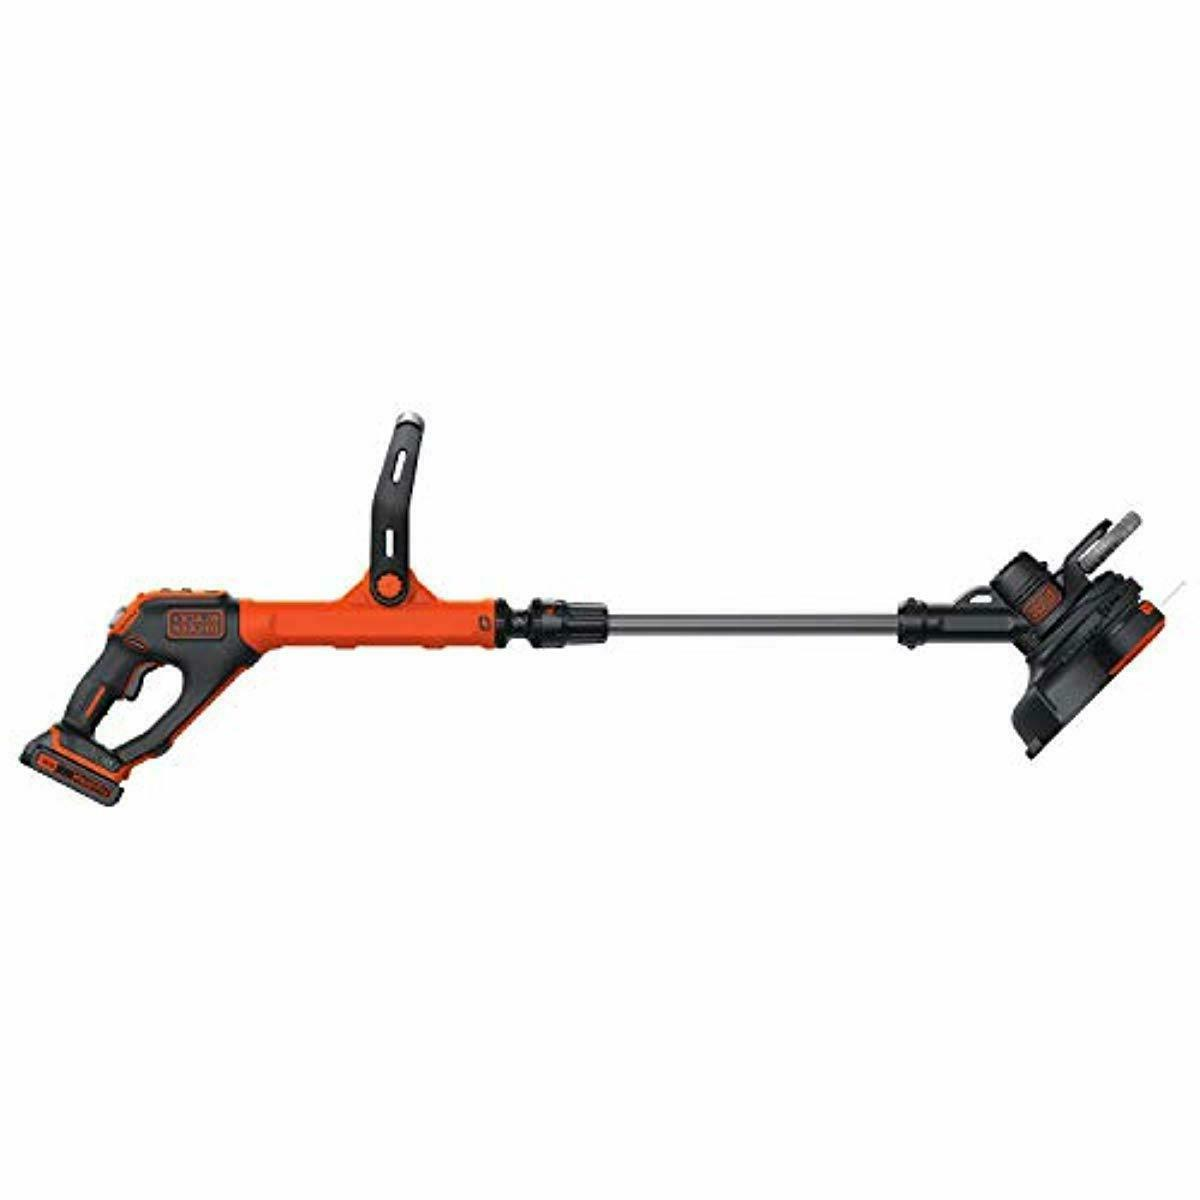 BLACK+DECKER Lithium Trimmer/Edger with Batte